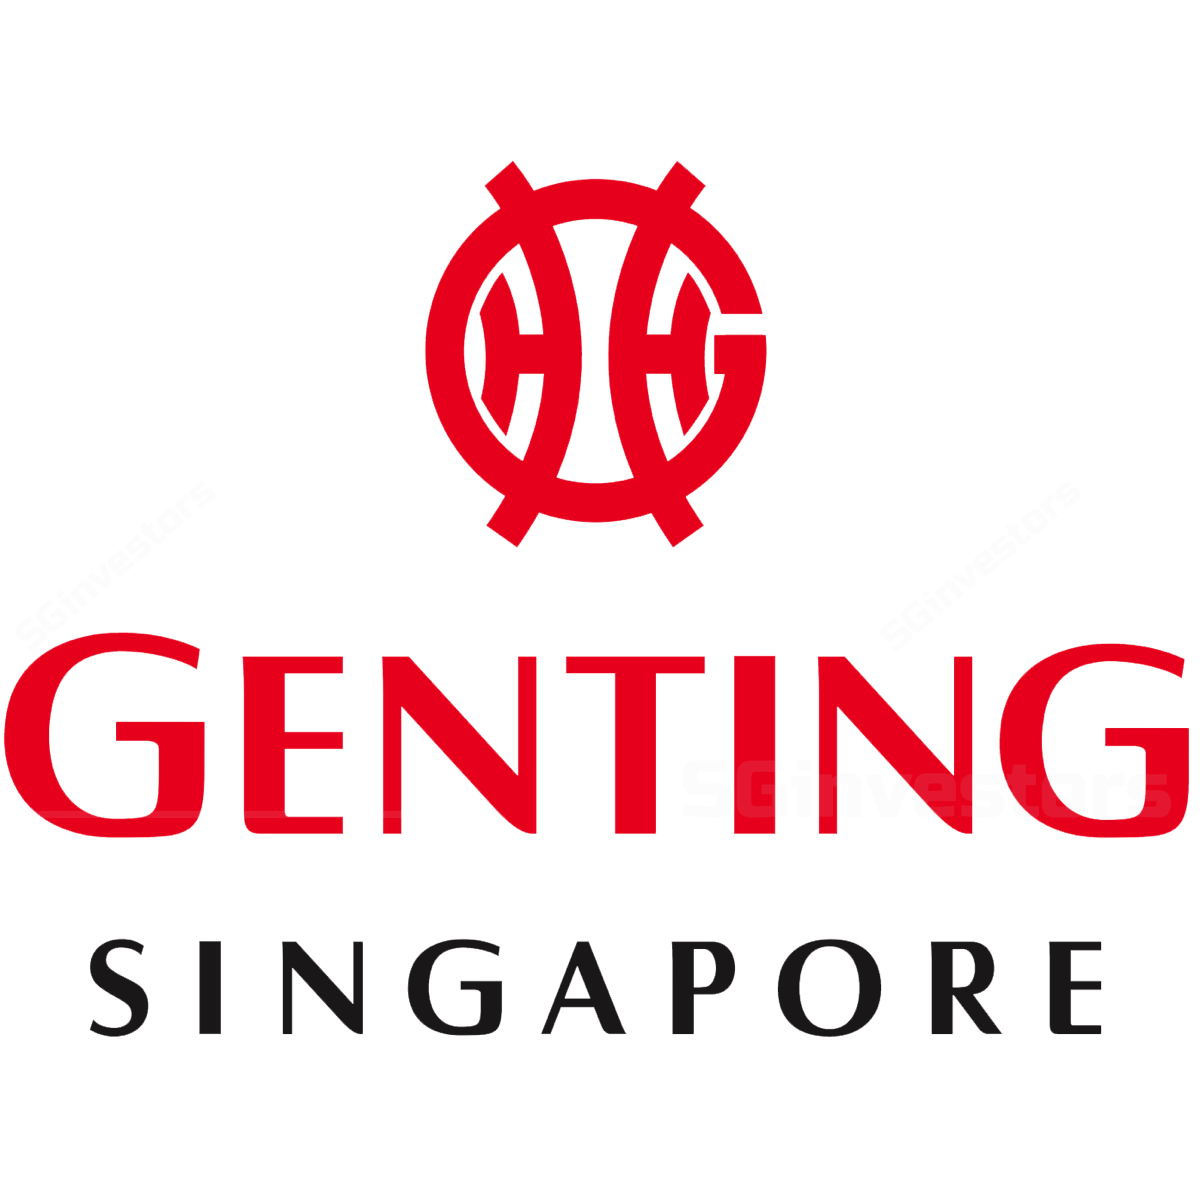 Genting Singapore - DBS Vickers 2016-11-24: Double up